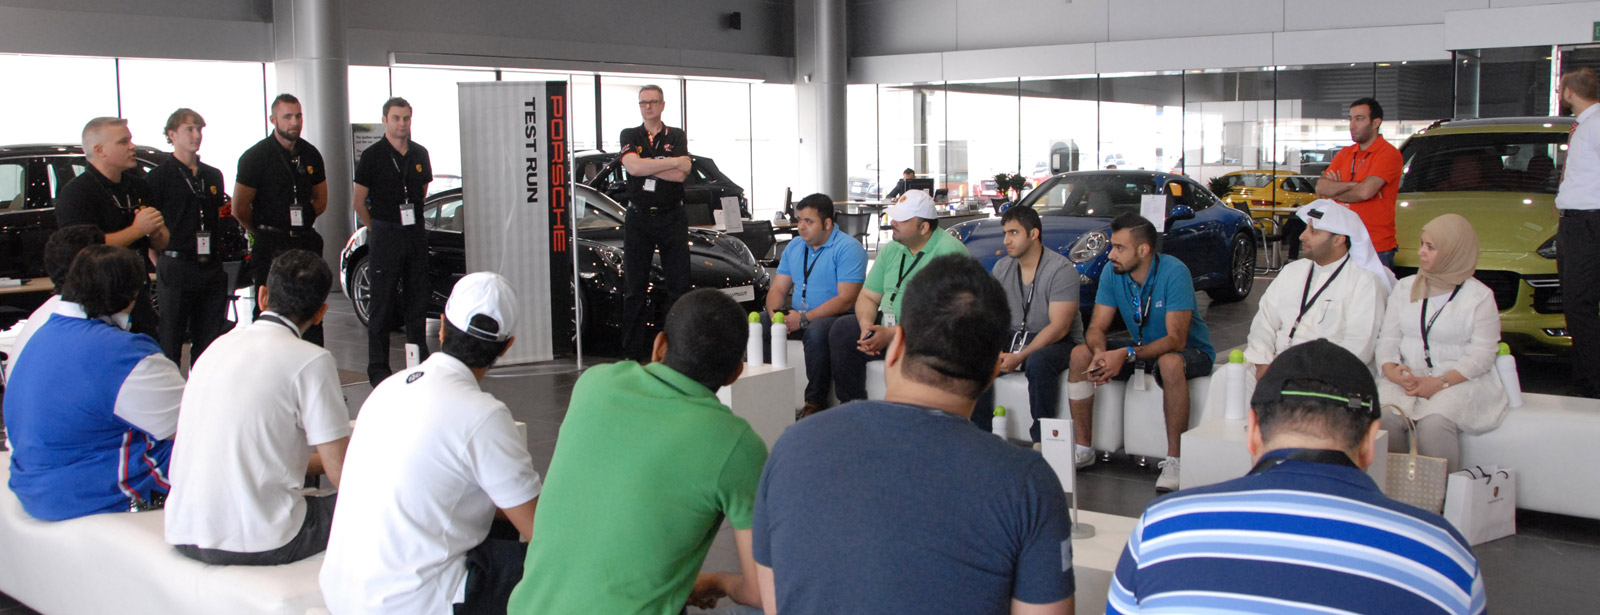 May 2015 | Porsche Centre Kuwait concludes yet another successful Test Run Event